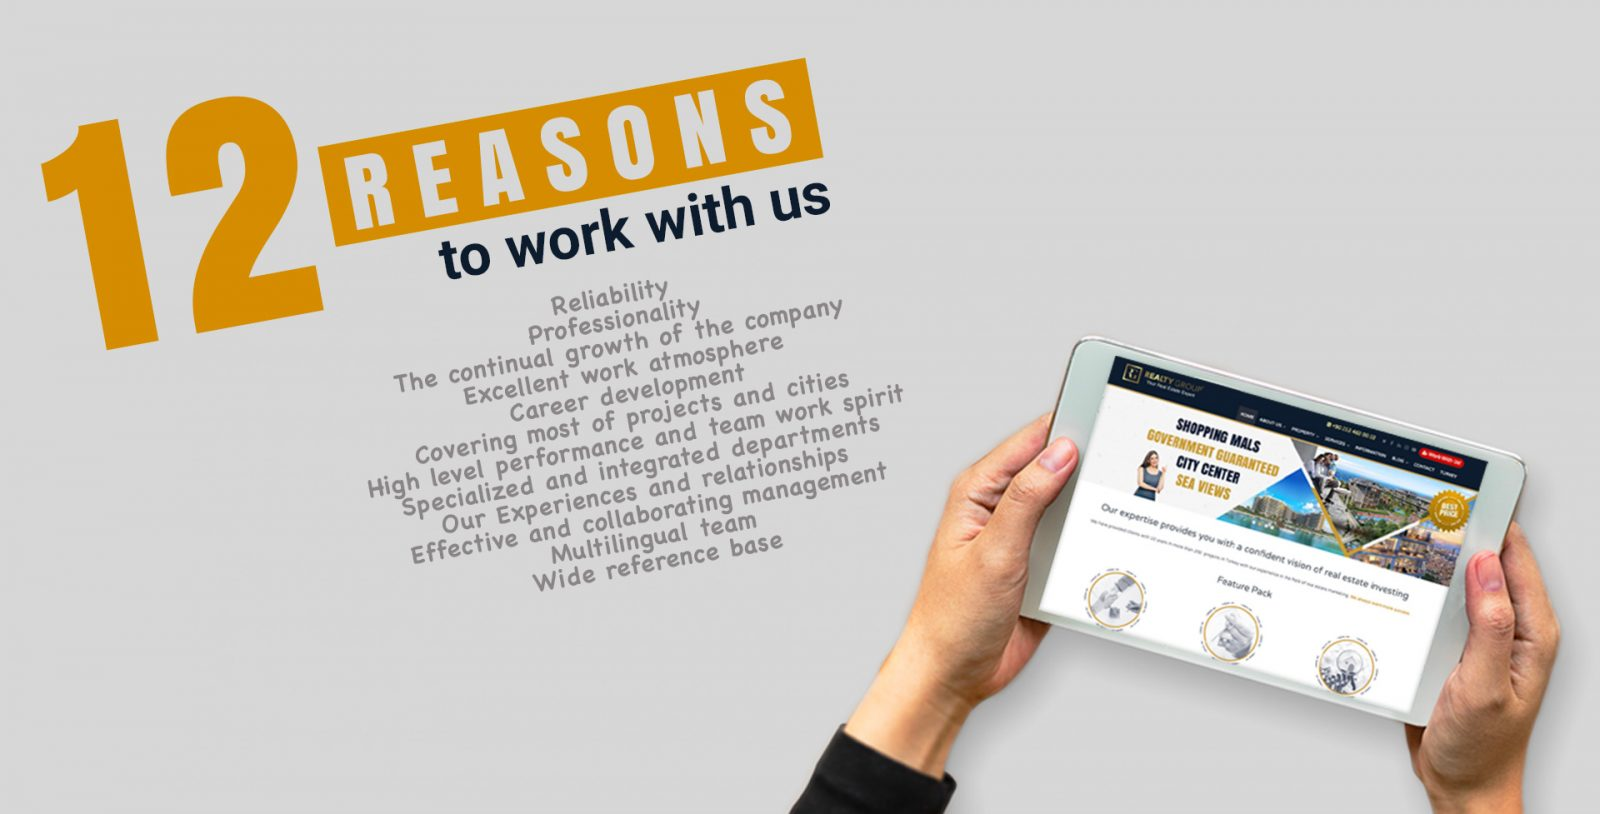 , 12 Reasons to work with us